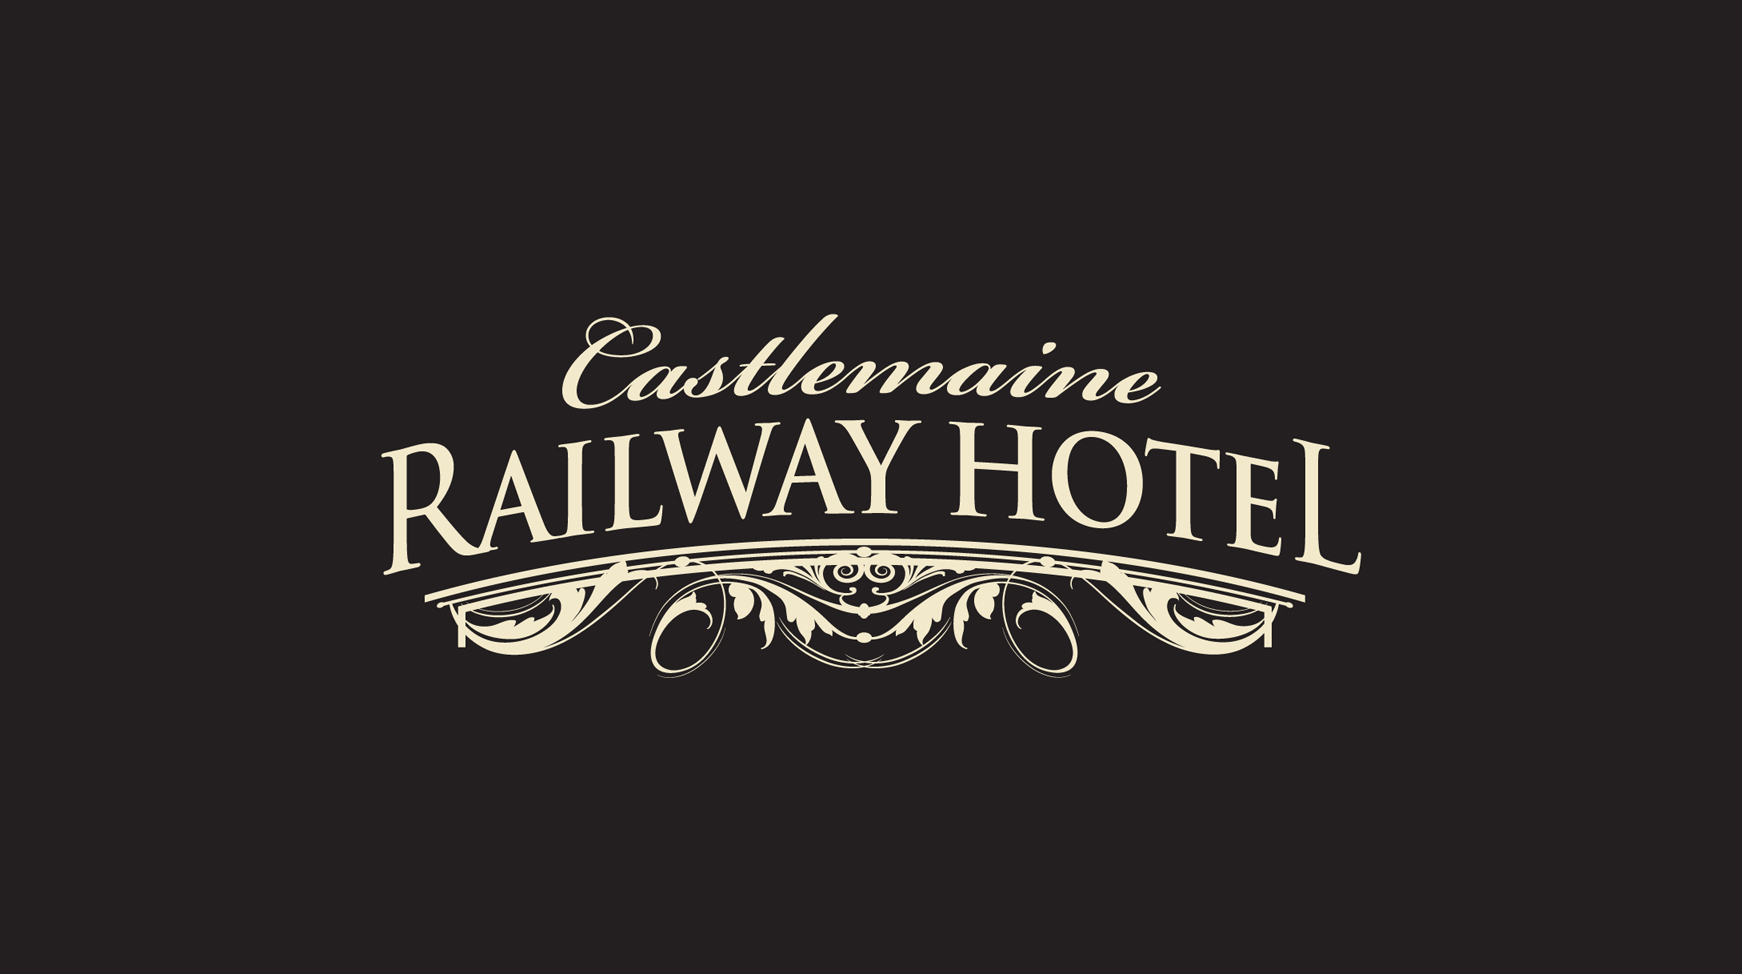 Railway Hotel Castlemaine - Accommodation Mt Buller